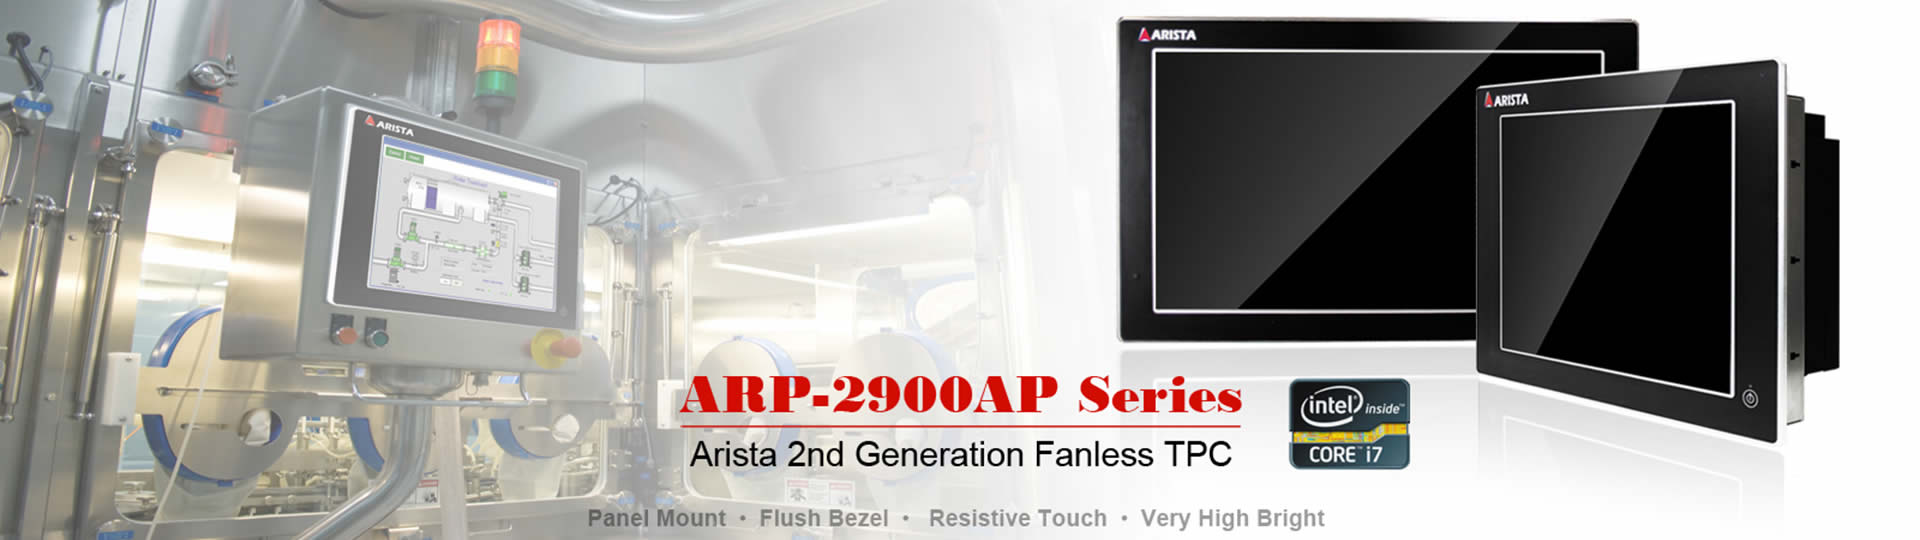 Fanless Touch Panel PCs ARP-2900AP Series